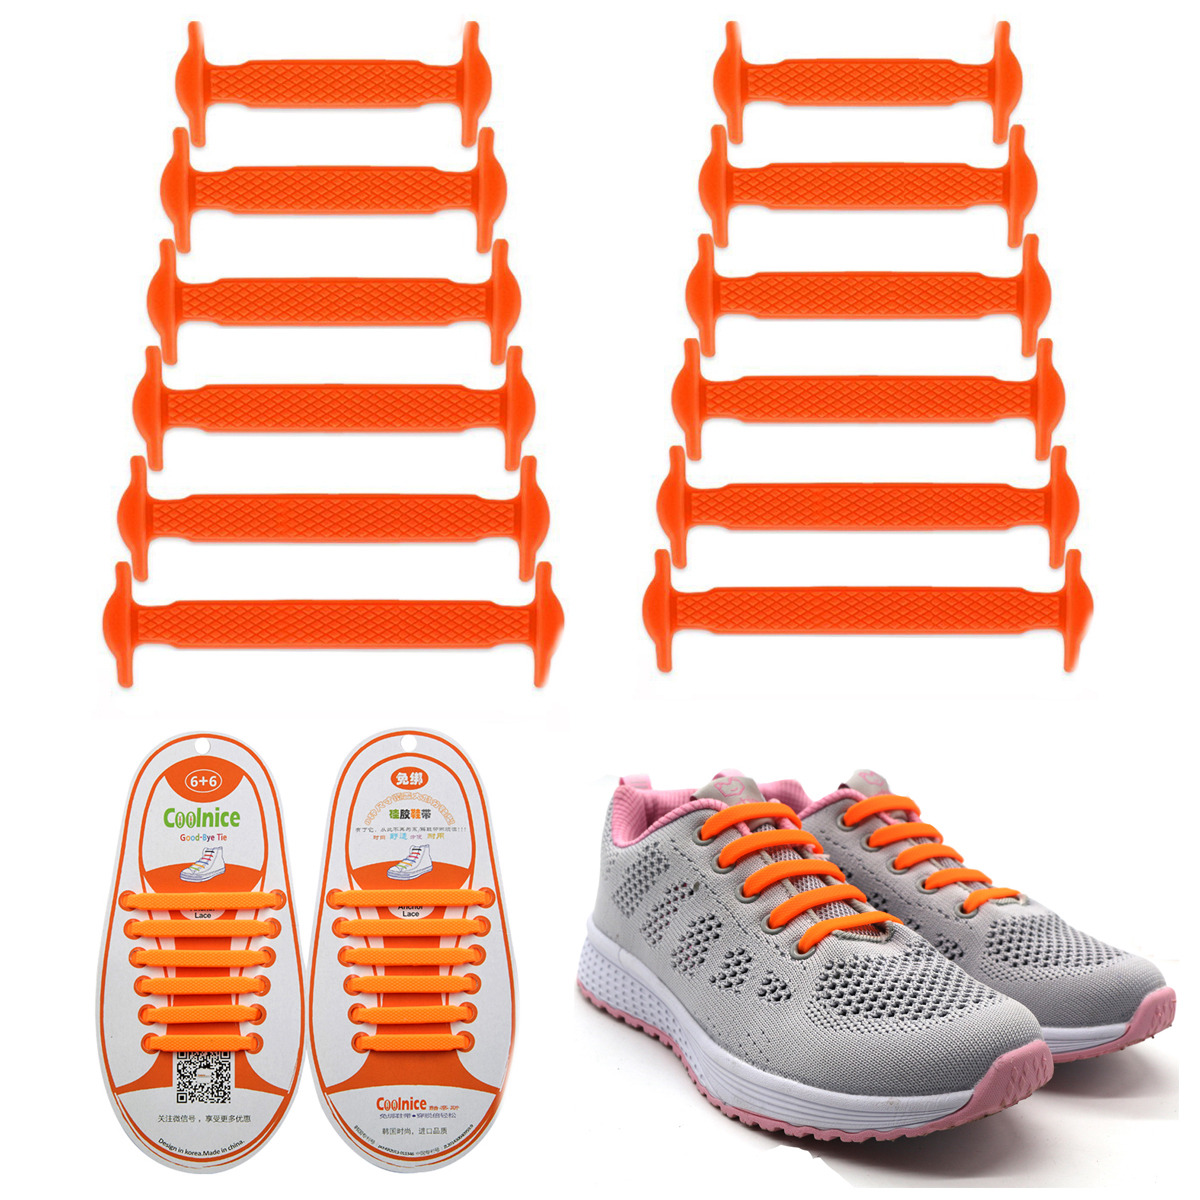 Coolnice No Tie Shoelaces for Kids and Adults (1 Pair Kids Size Orange)